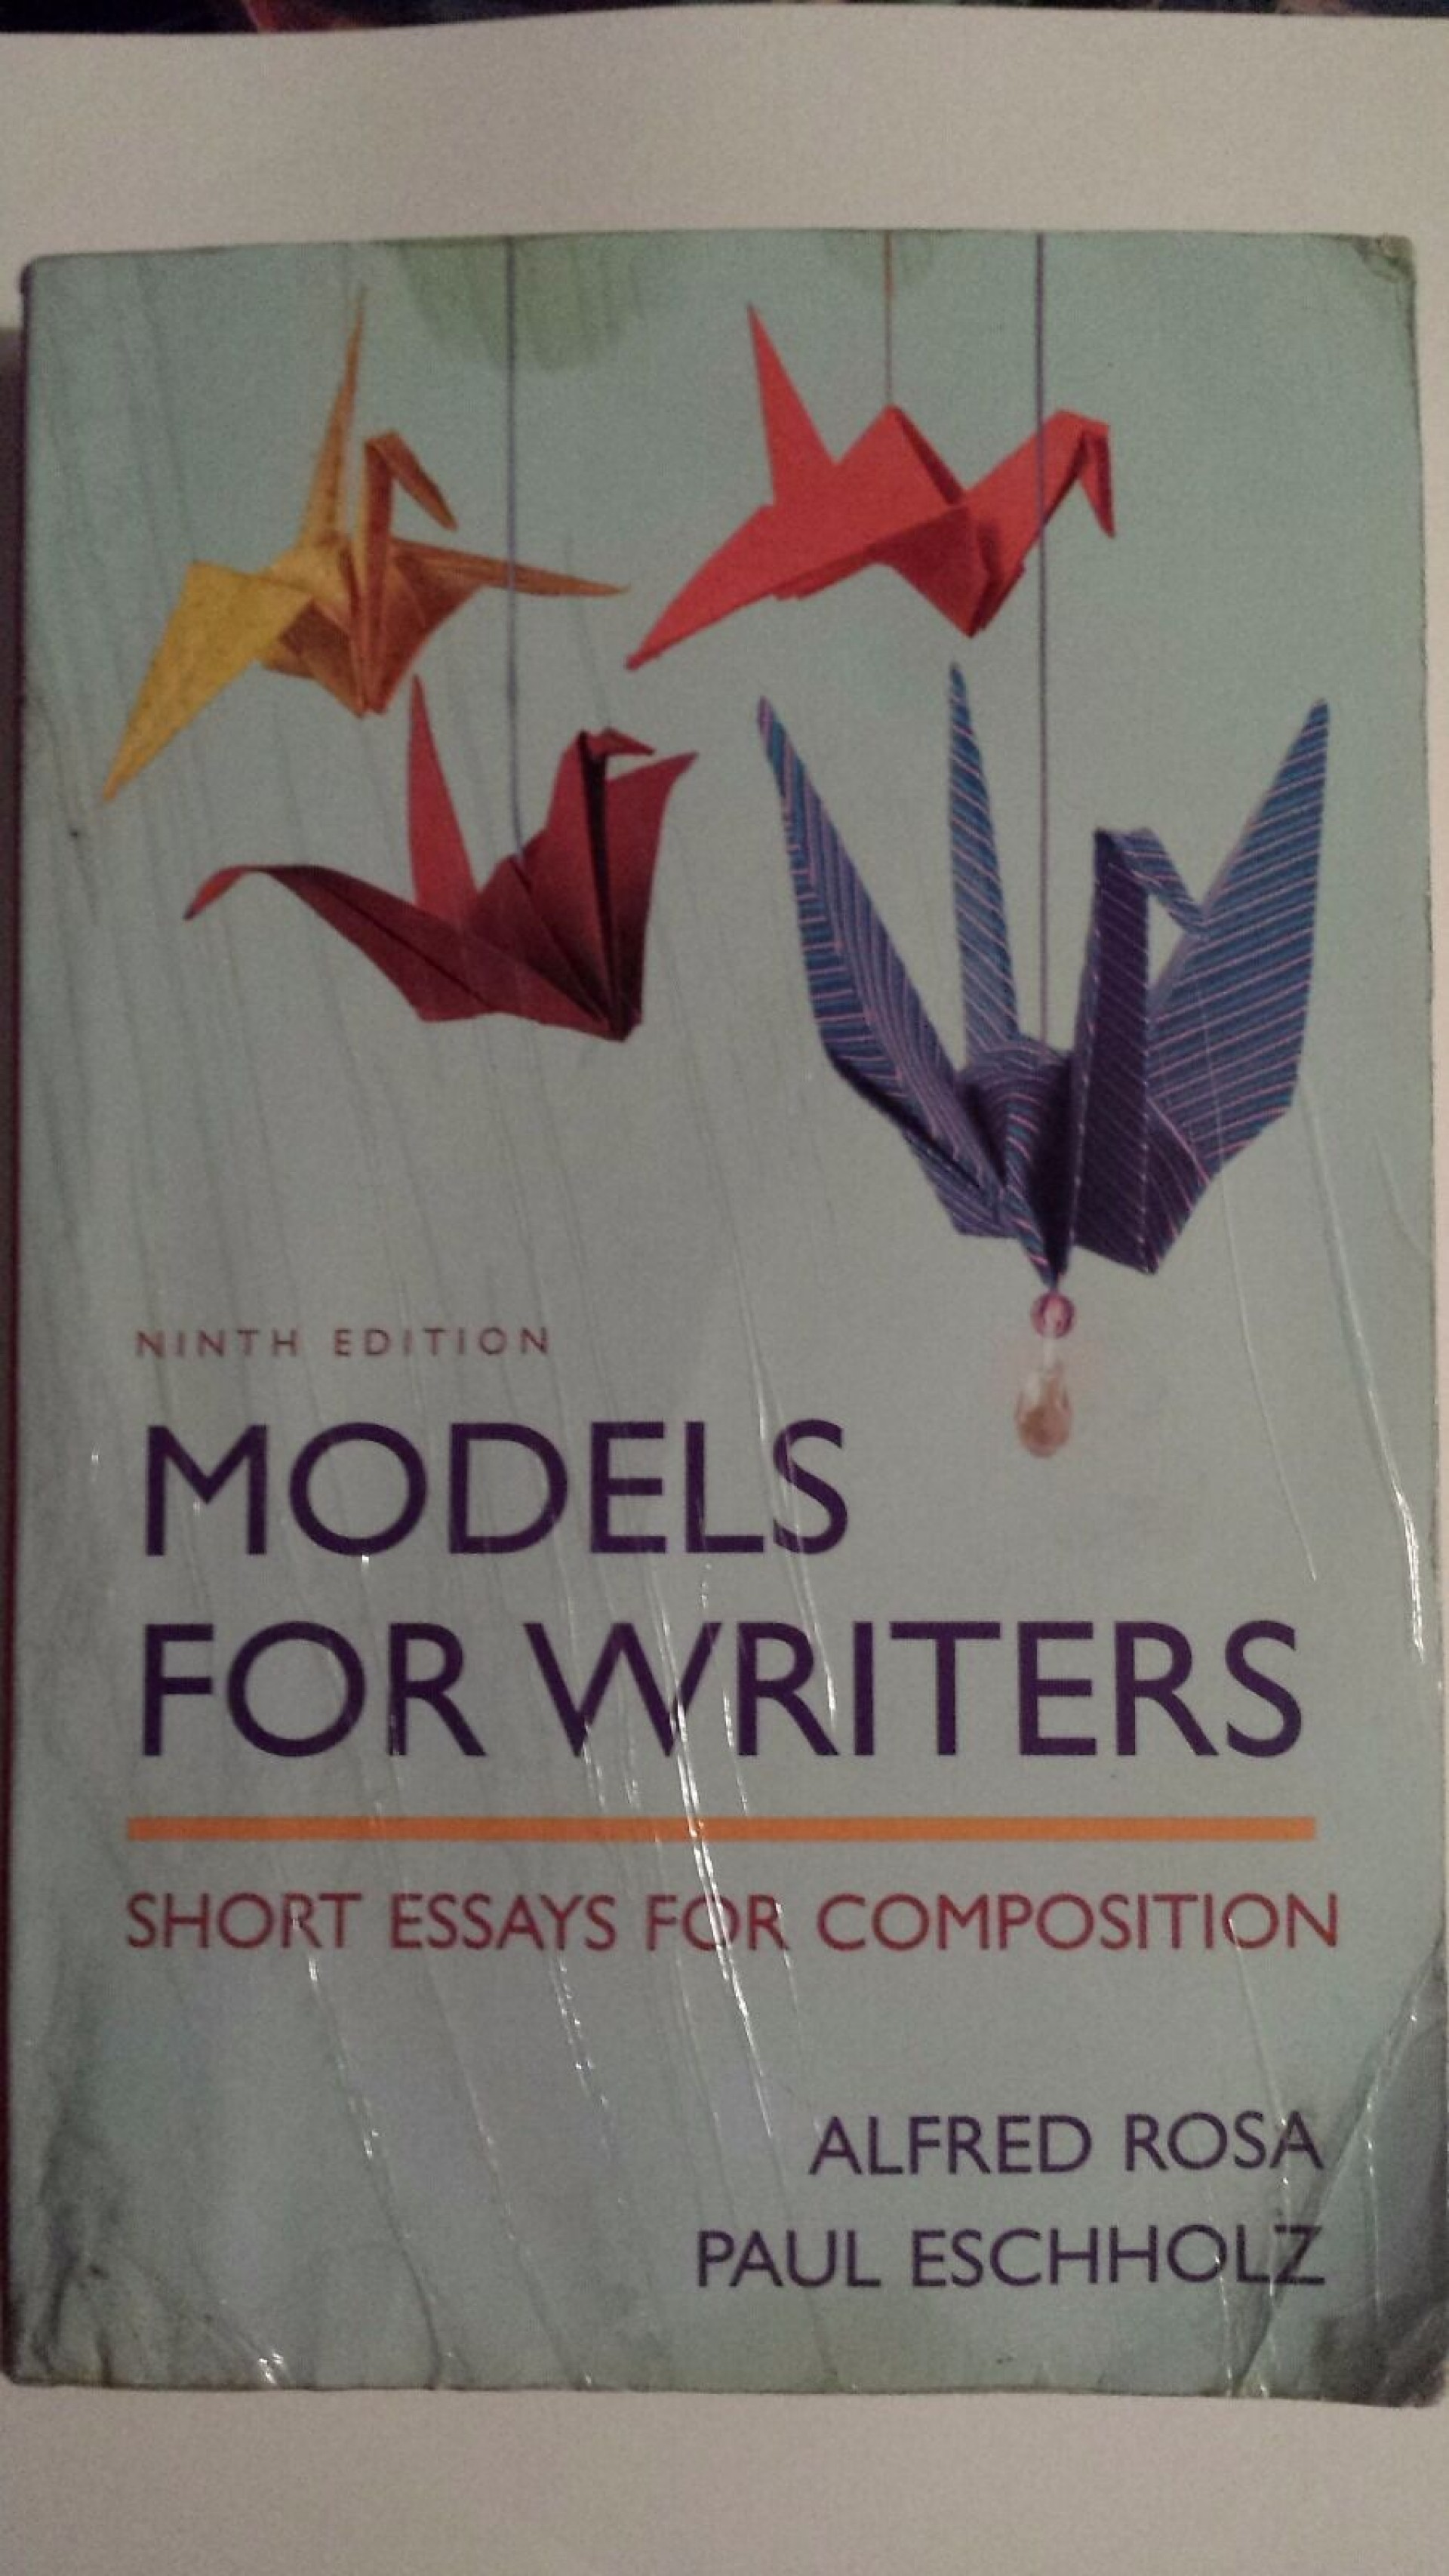 016 S L1600 Models For Writers Short Essays Composition Essay Singular 12th Edition Pdf 13th 1920